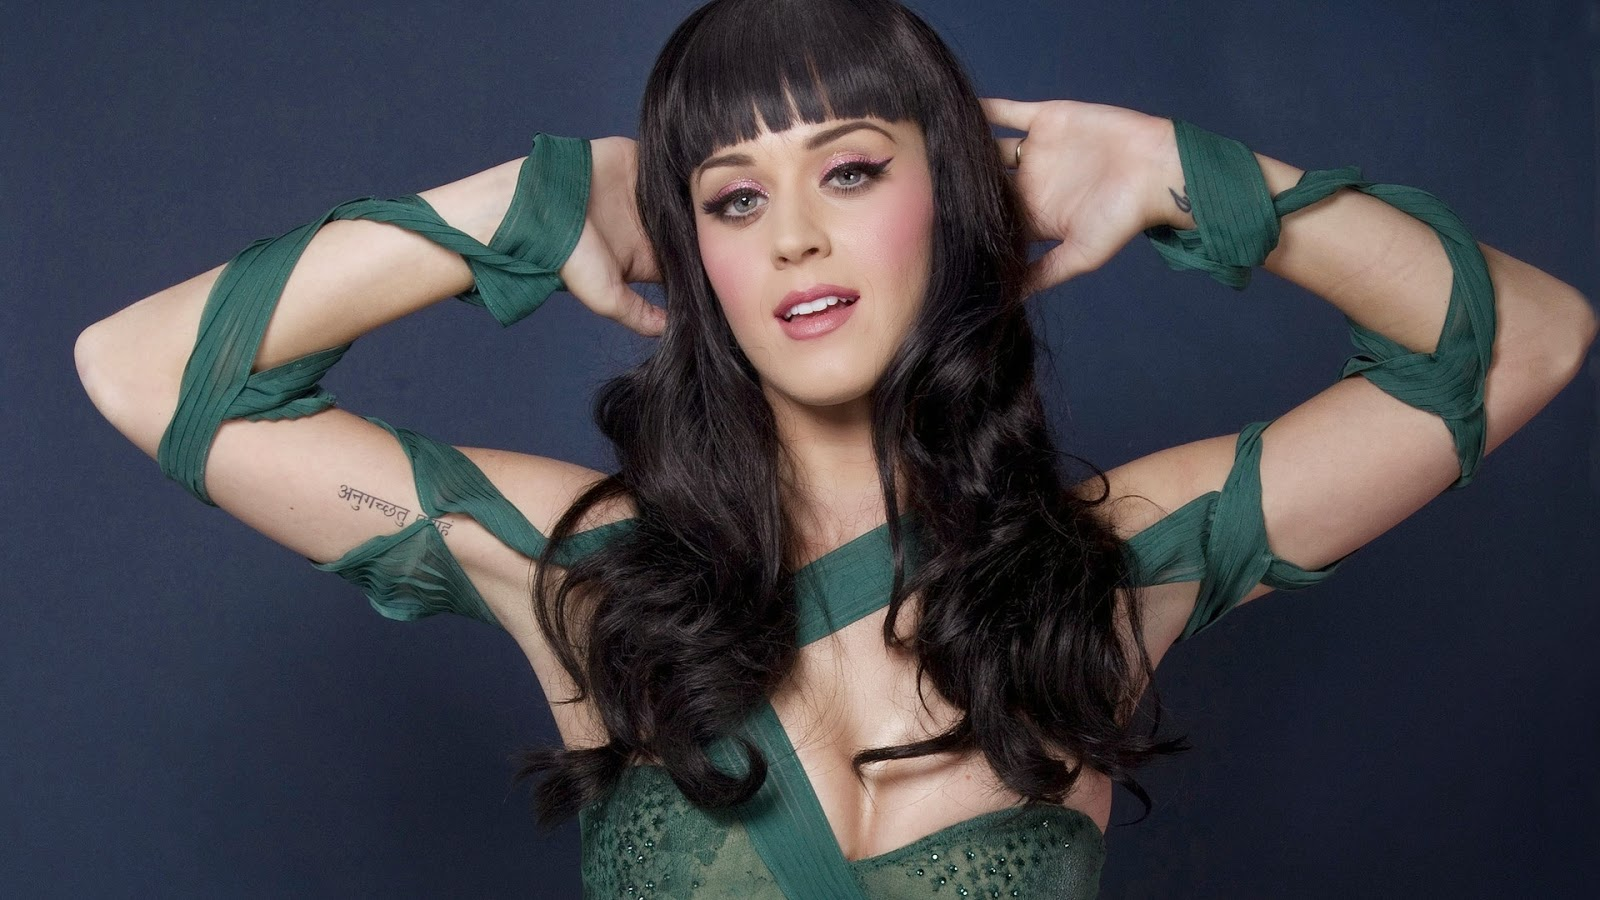 Wallpaper iphone katy perry - Wallpaper